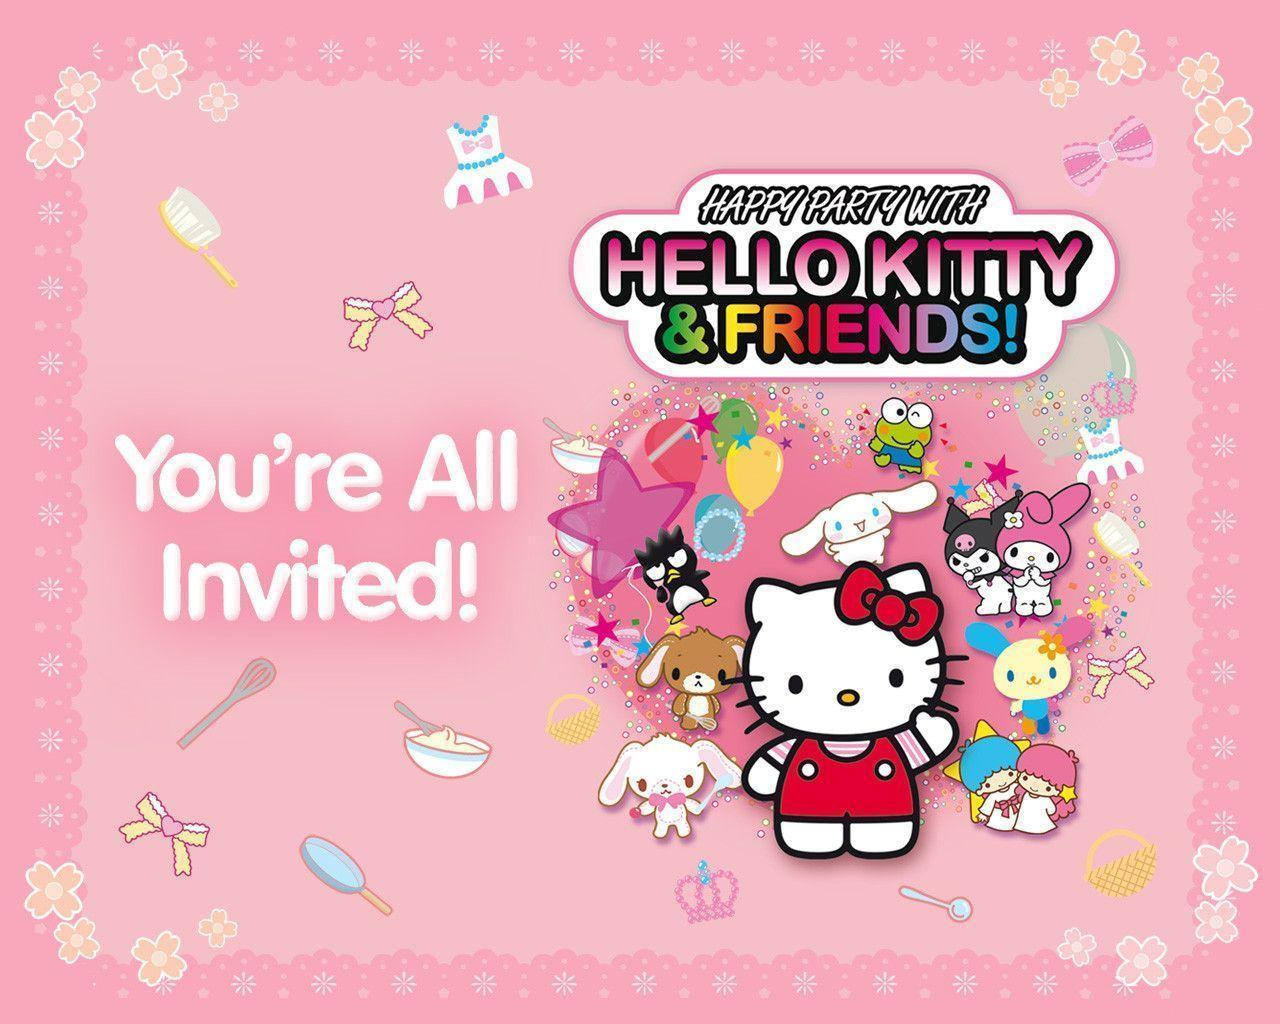 Free Download Hello Kitty And Friends Wallpapers 1280x1024 For